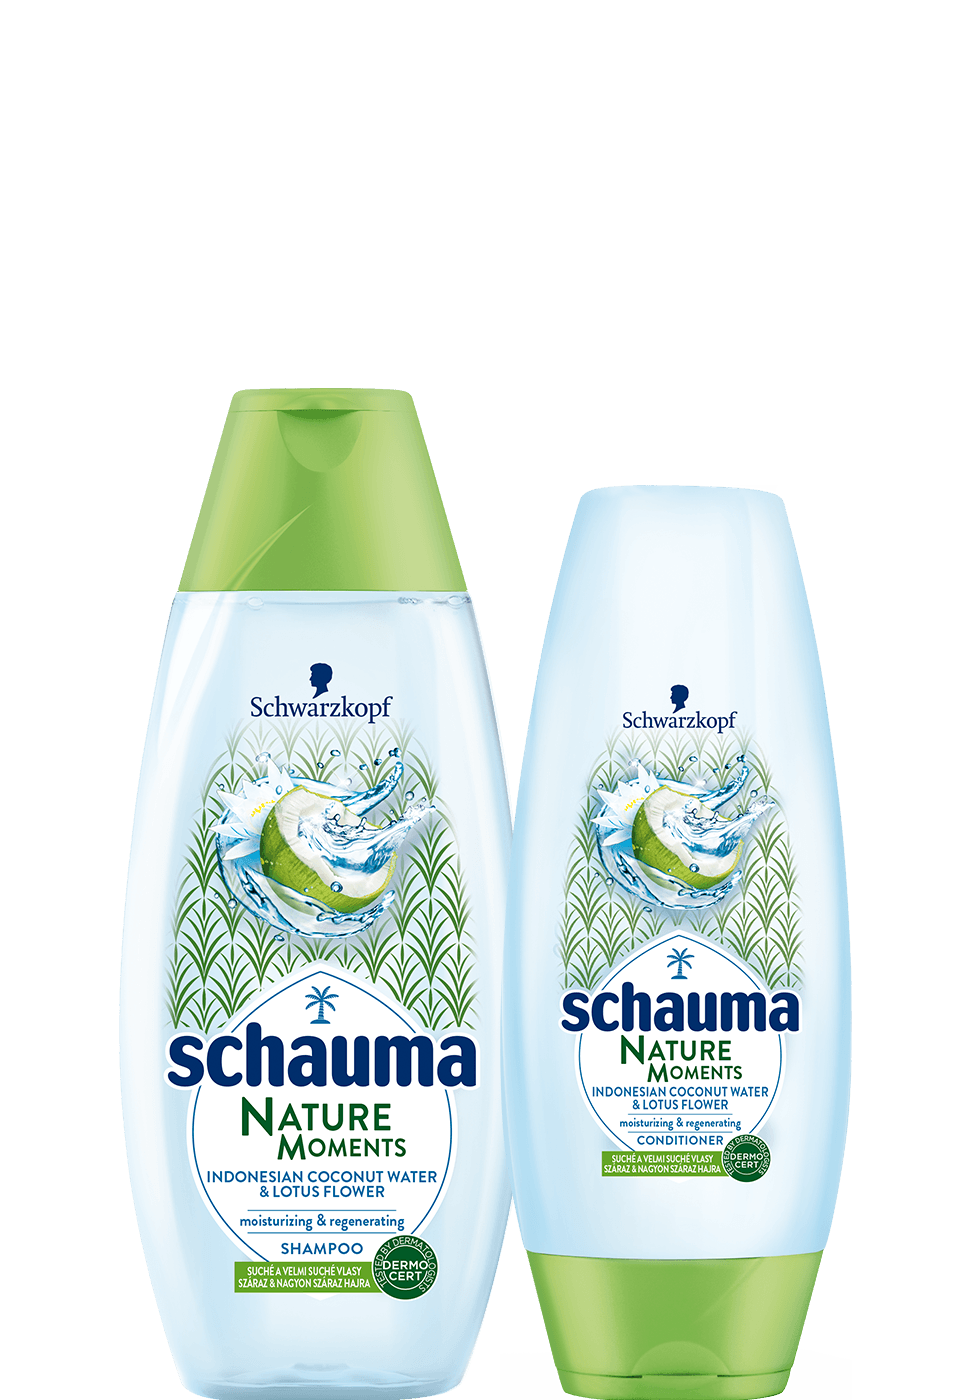 schauma_com_nature_moments_cocowater_home_packs_970x1400